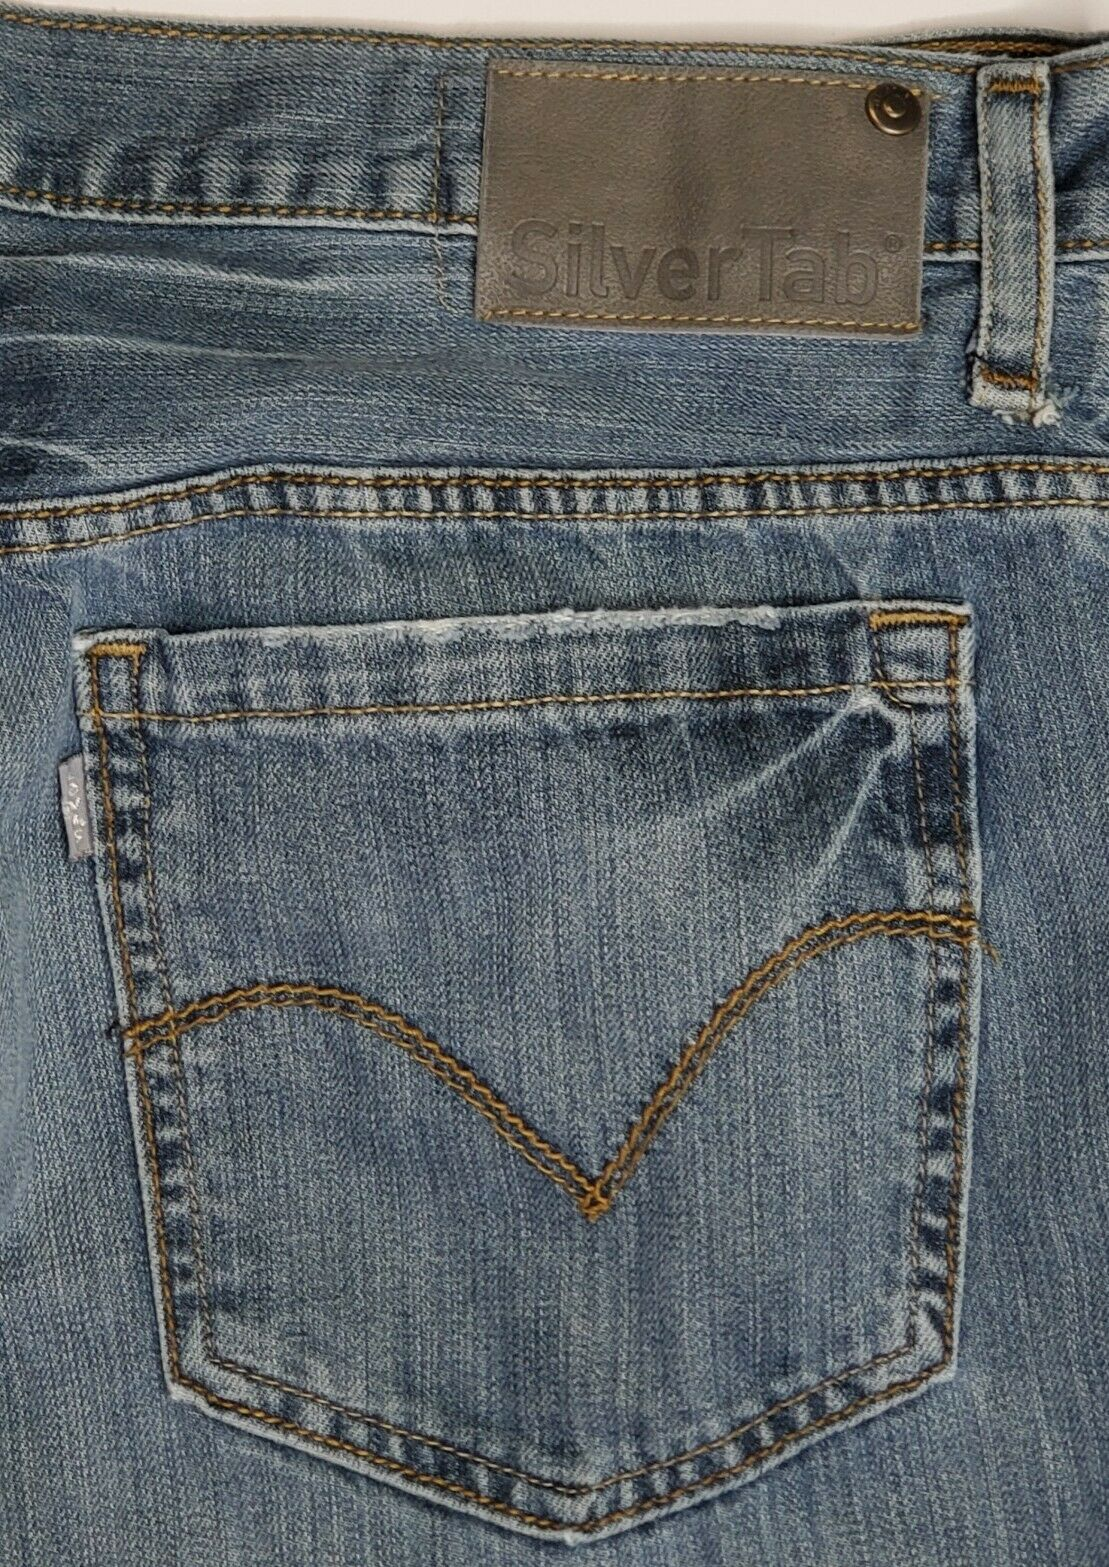 Vintage Levis Silvertab Baggy Straight Jeans 36x3… - image 7